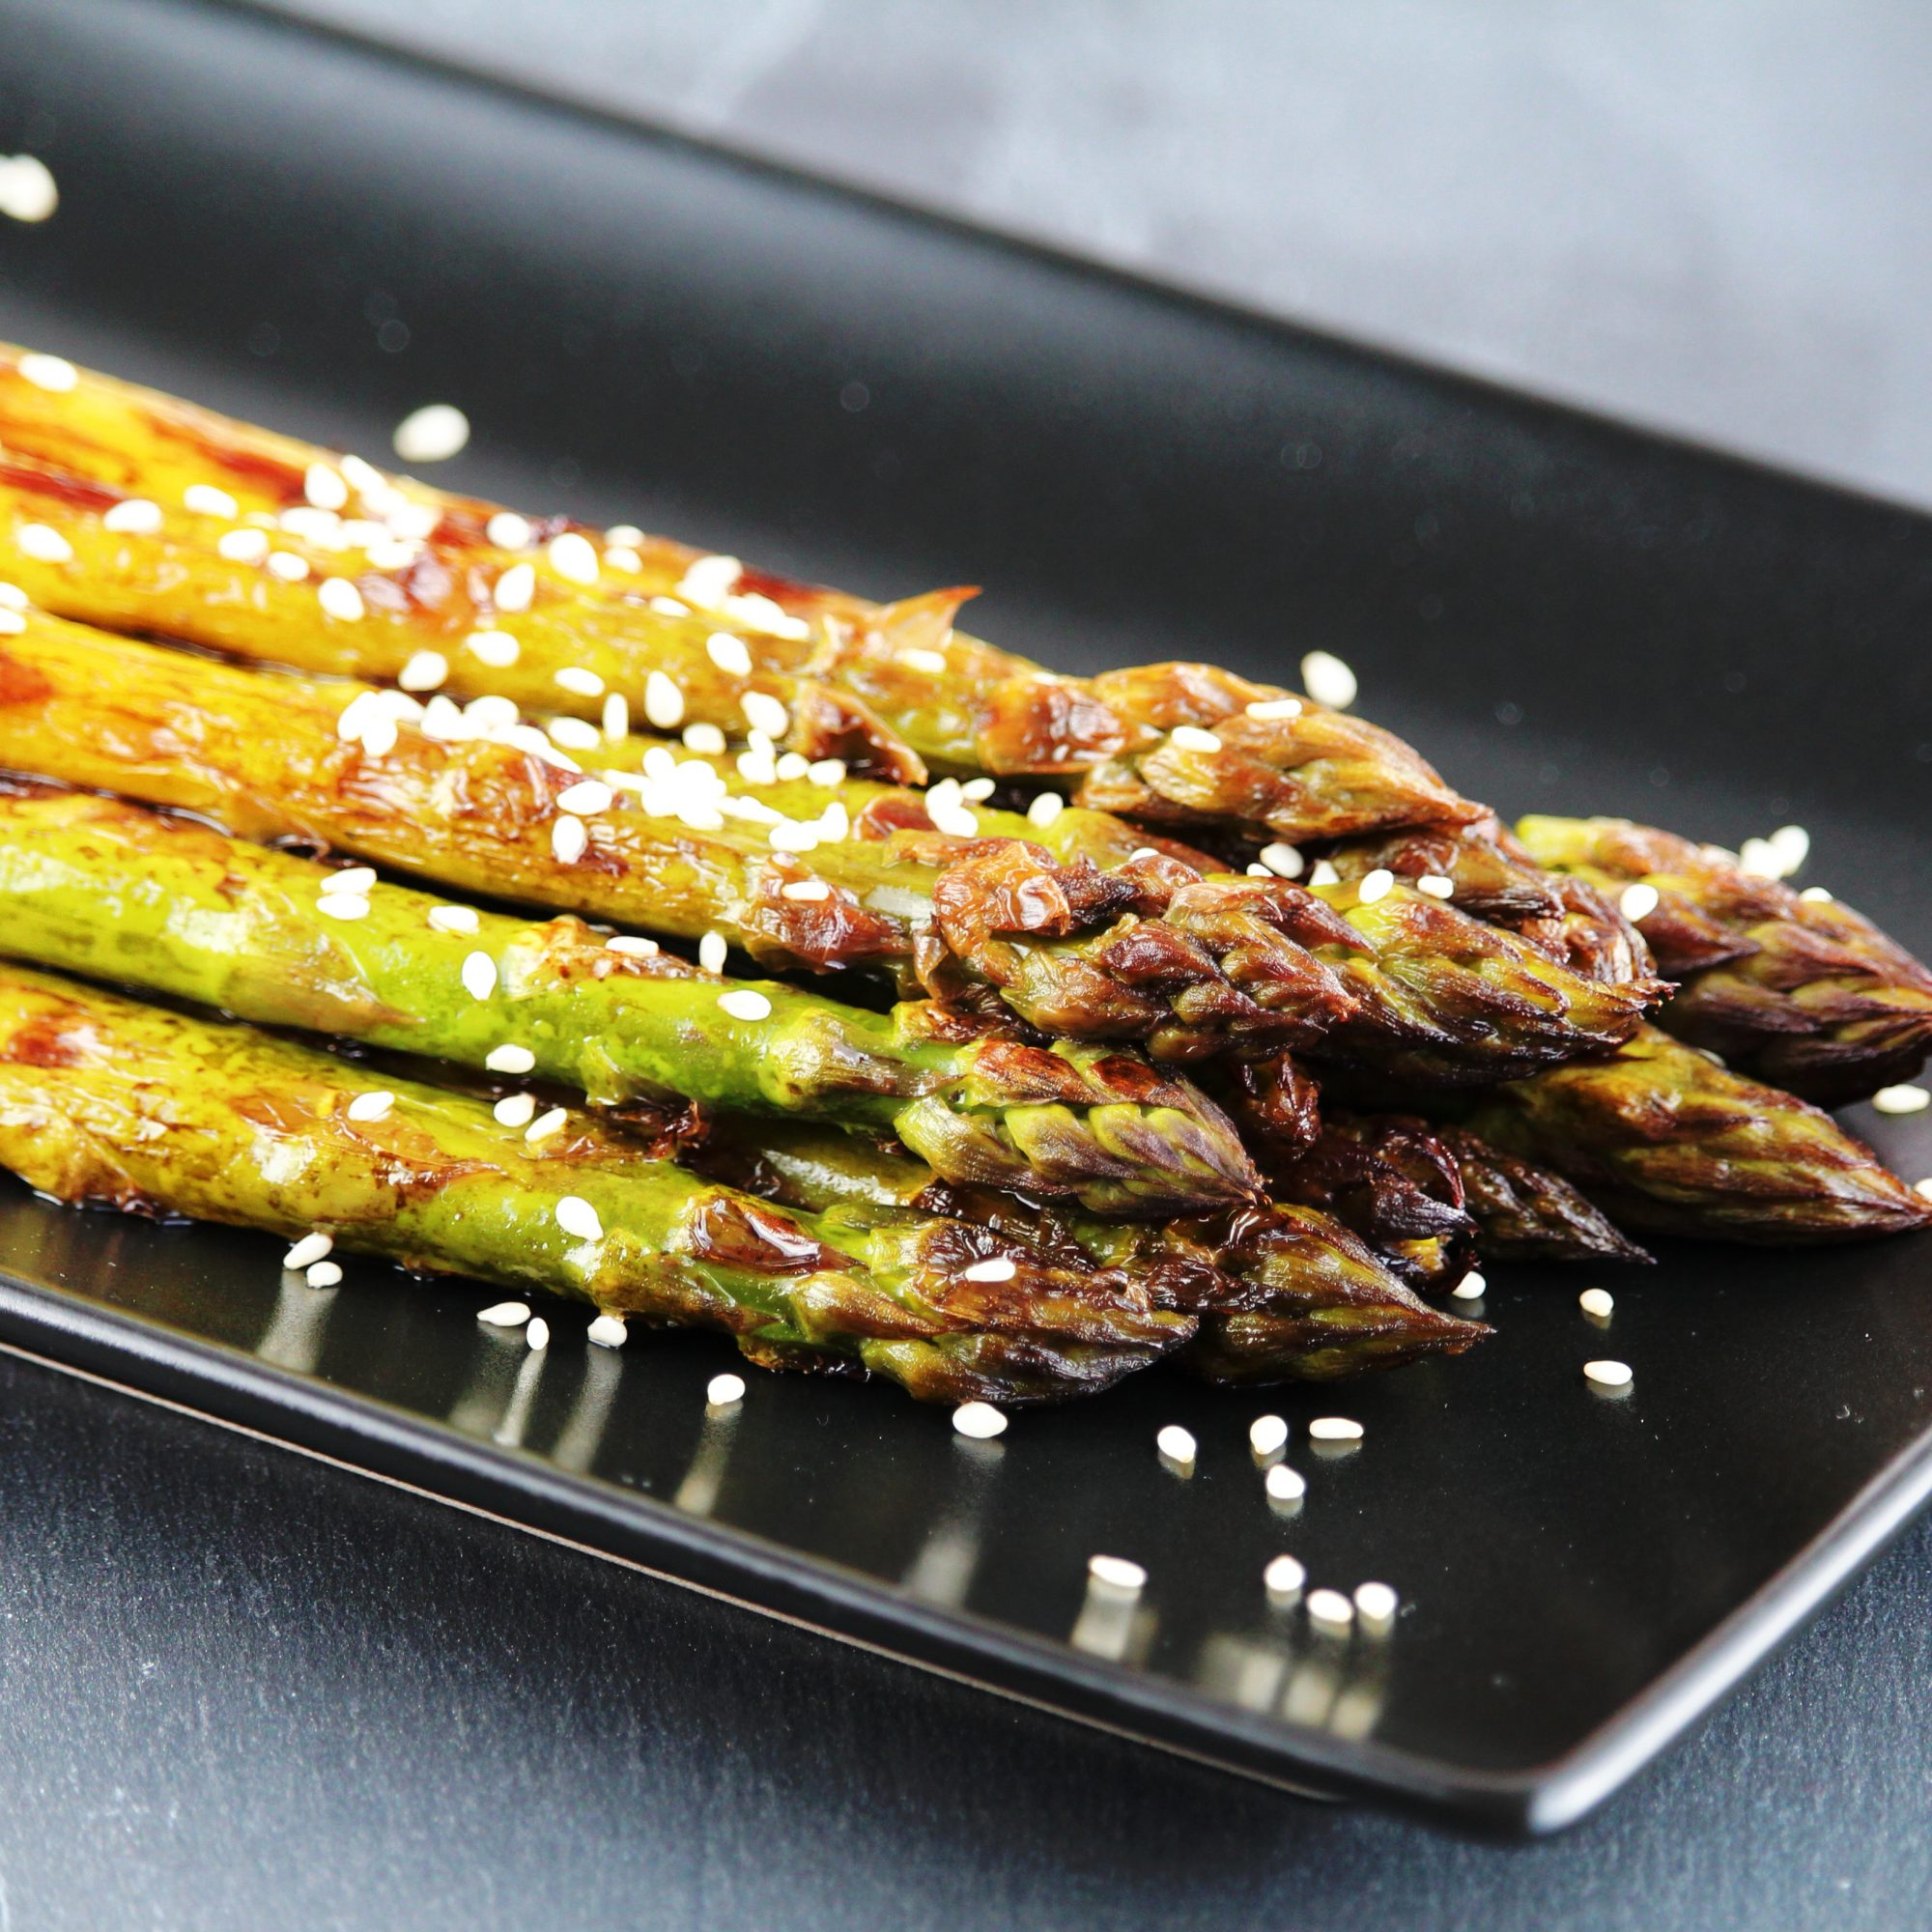 grilled asparagus with sesame seeds on black plate